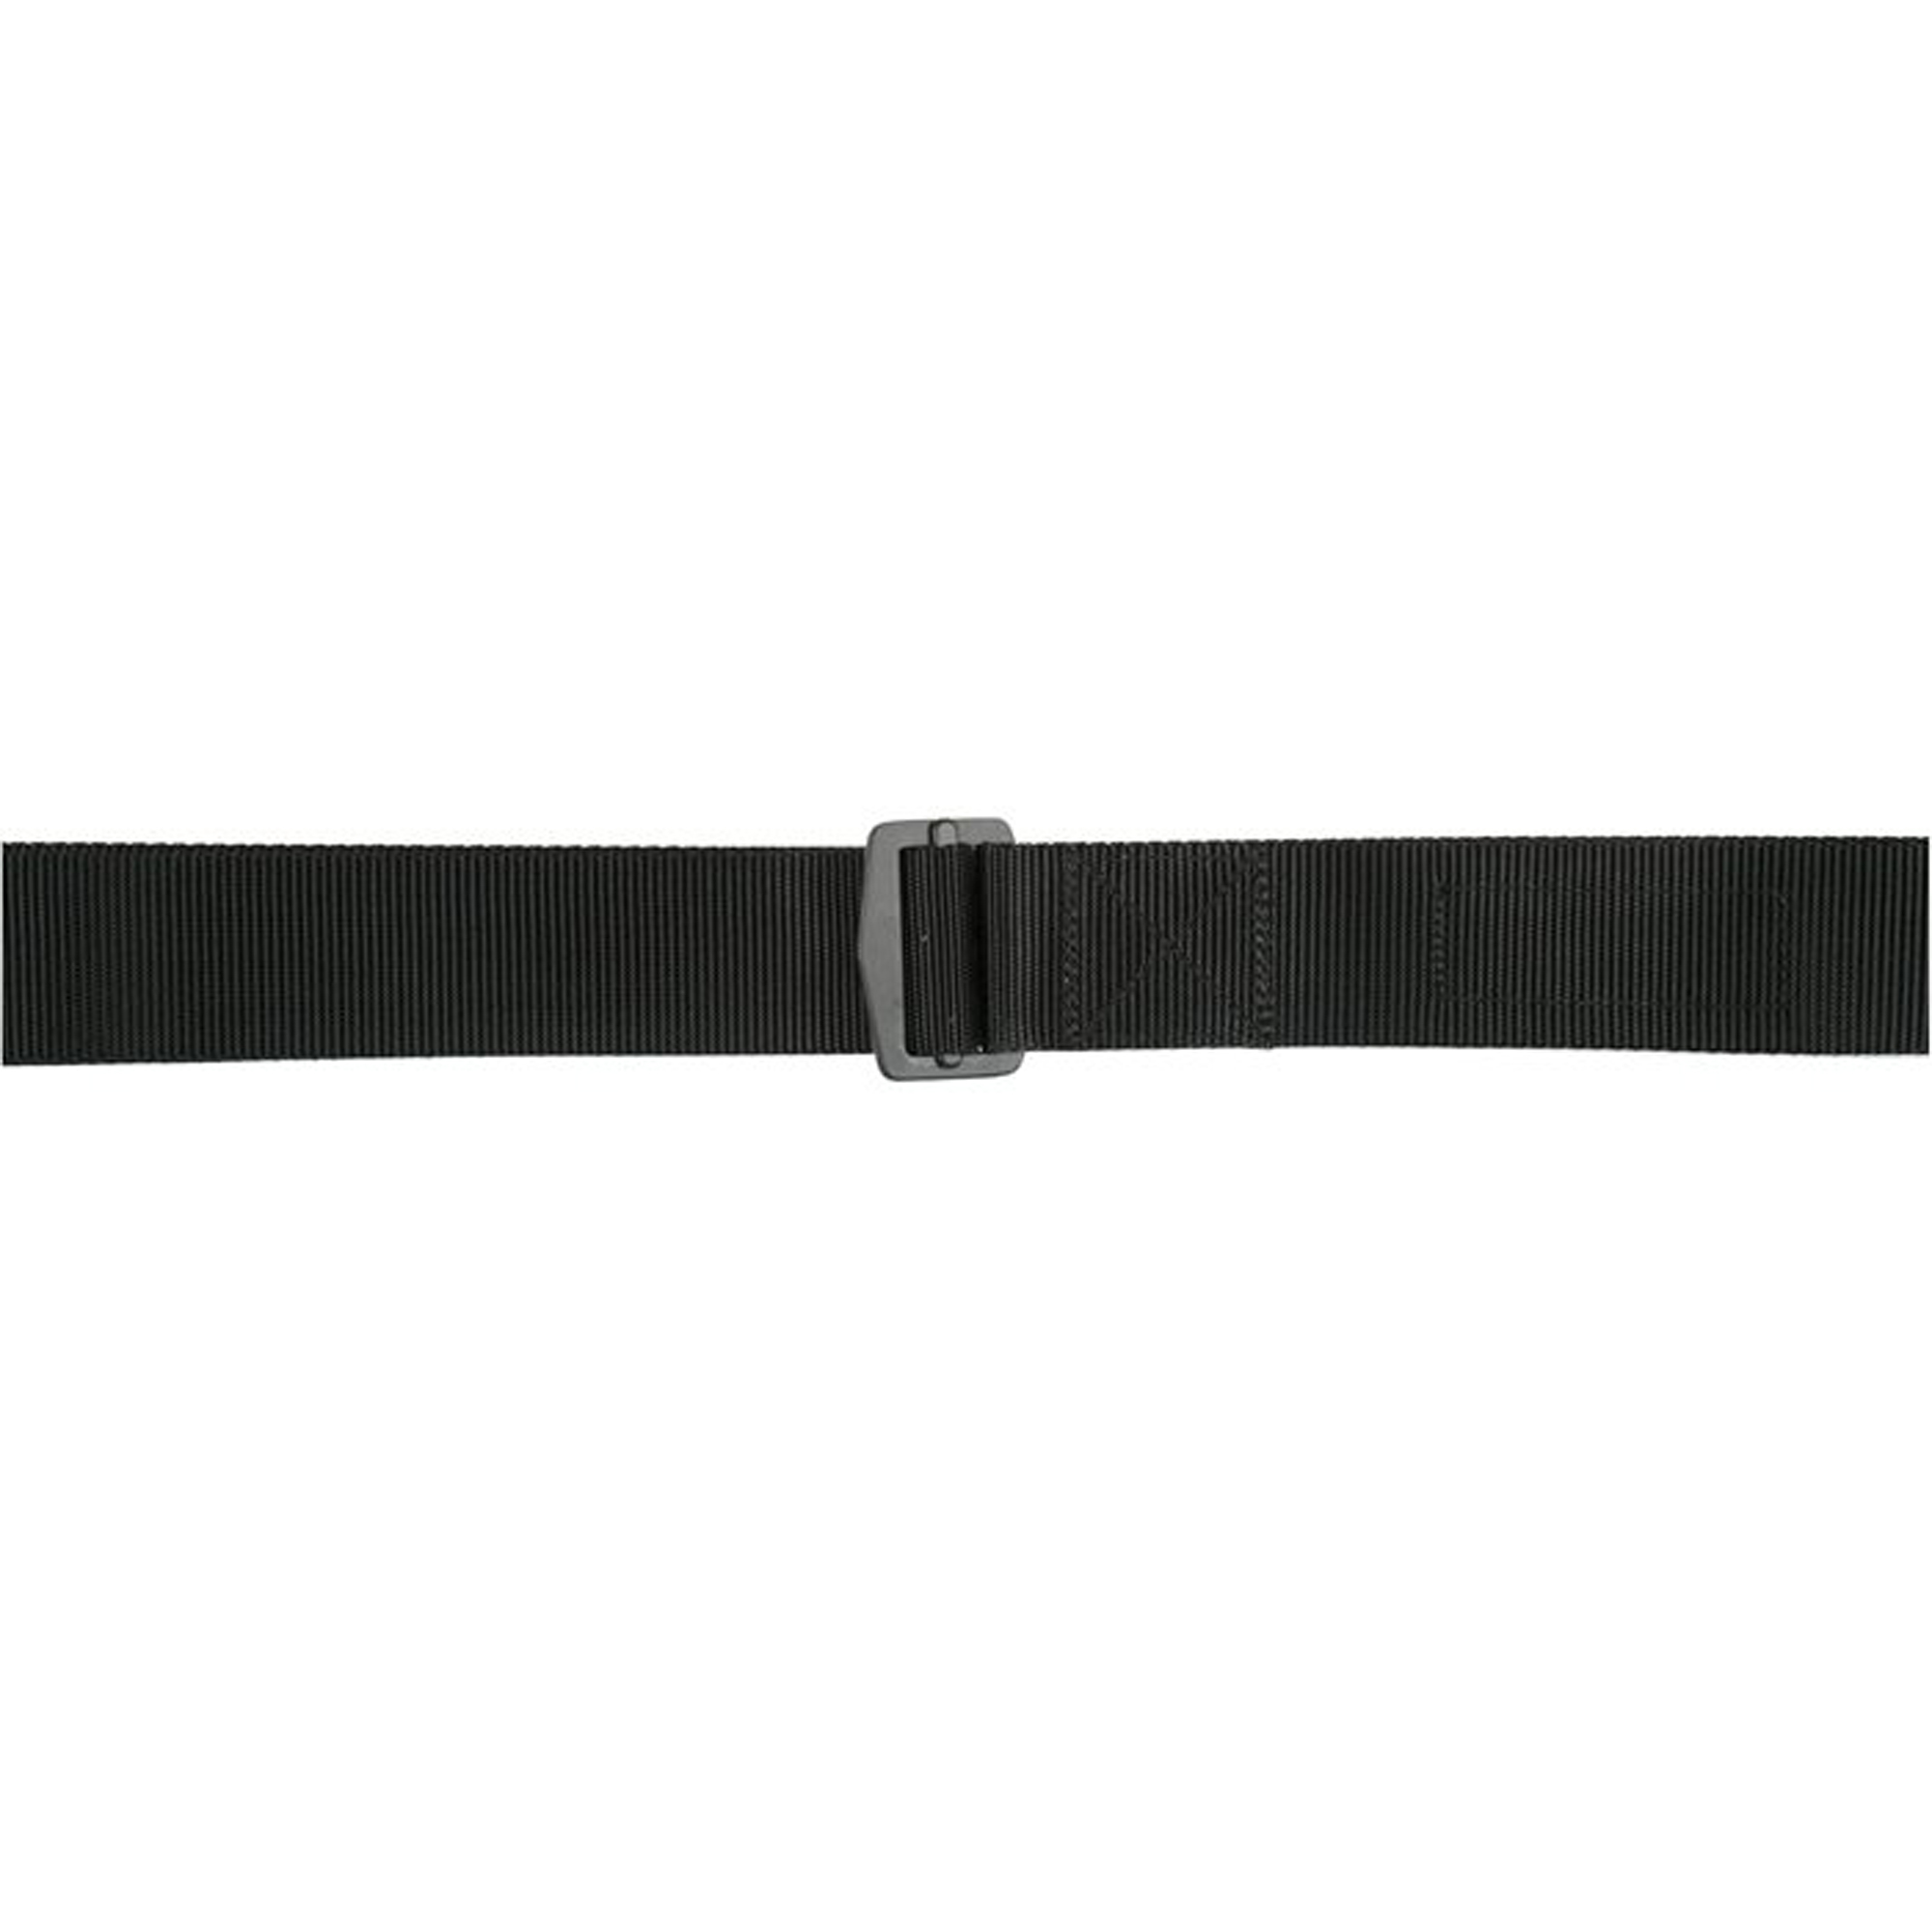 The classic choice: This one-size-fits-all belt features a metal friction buckle.